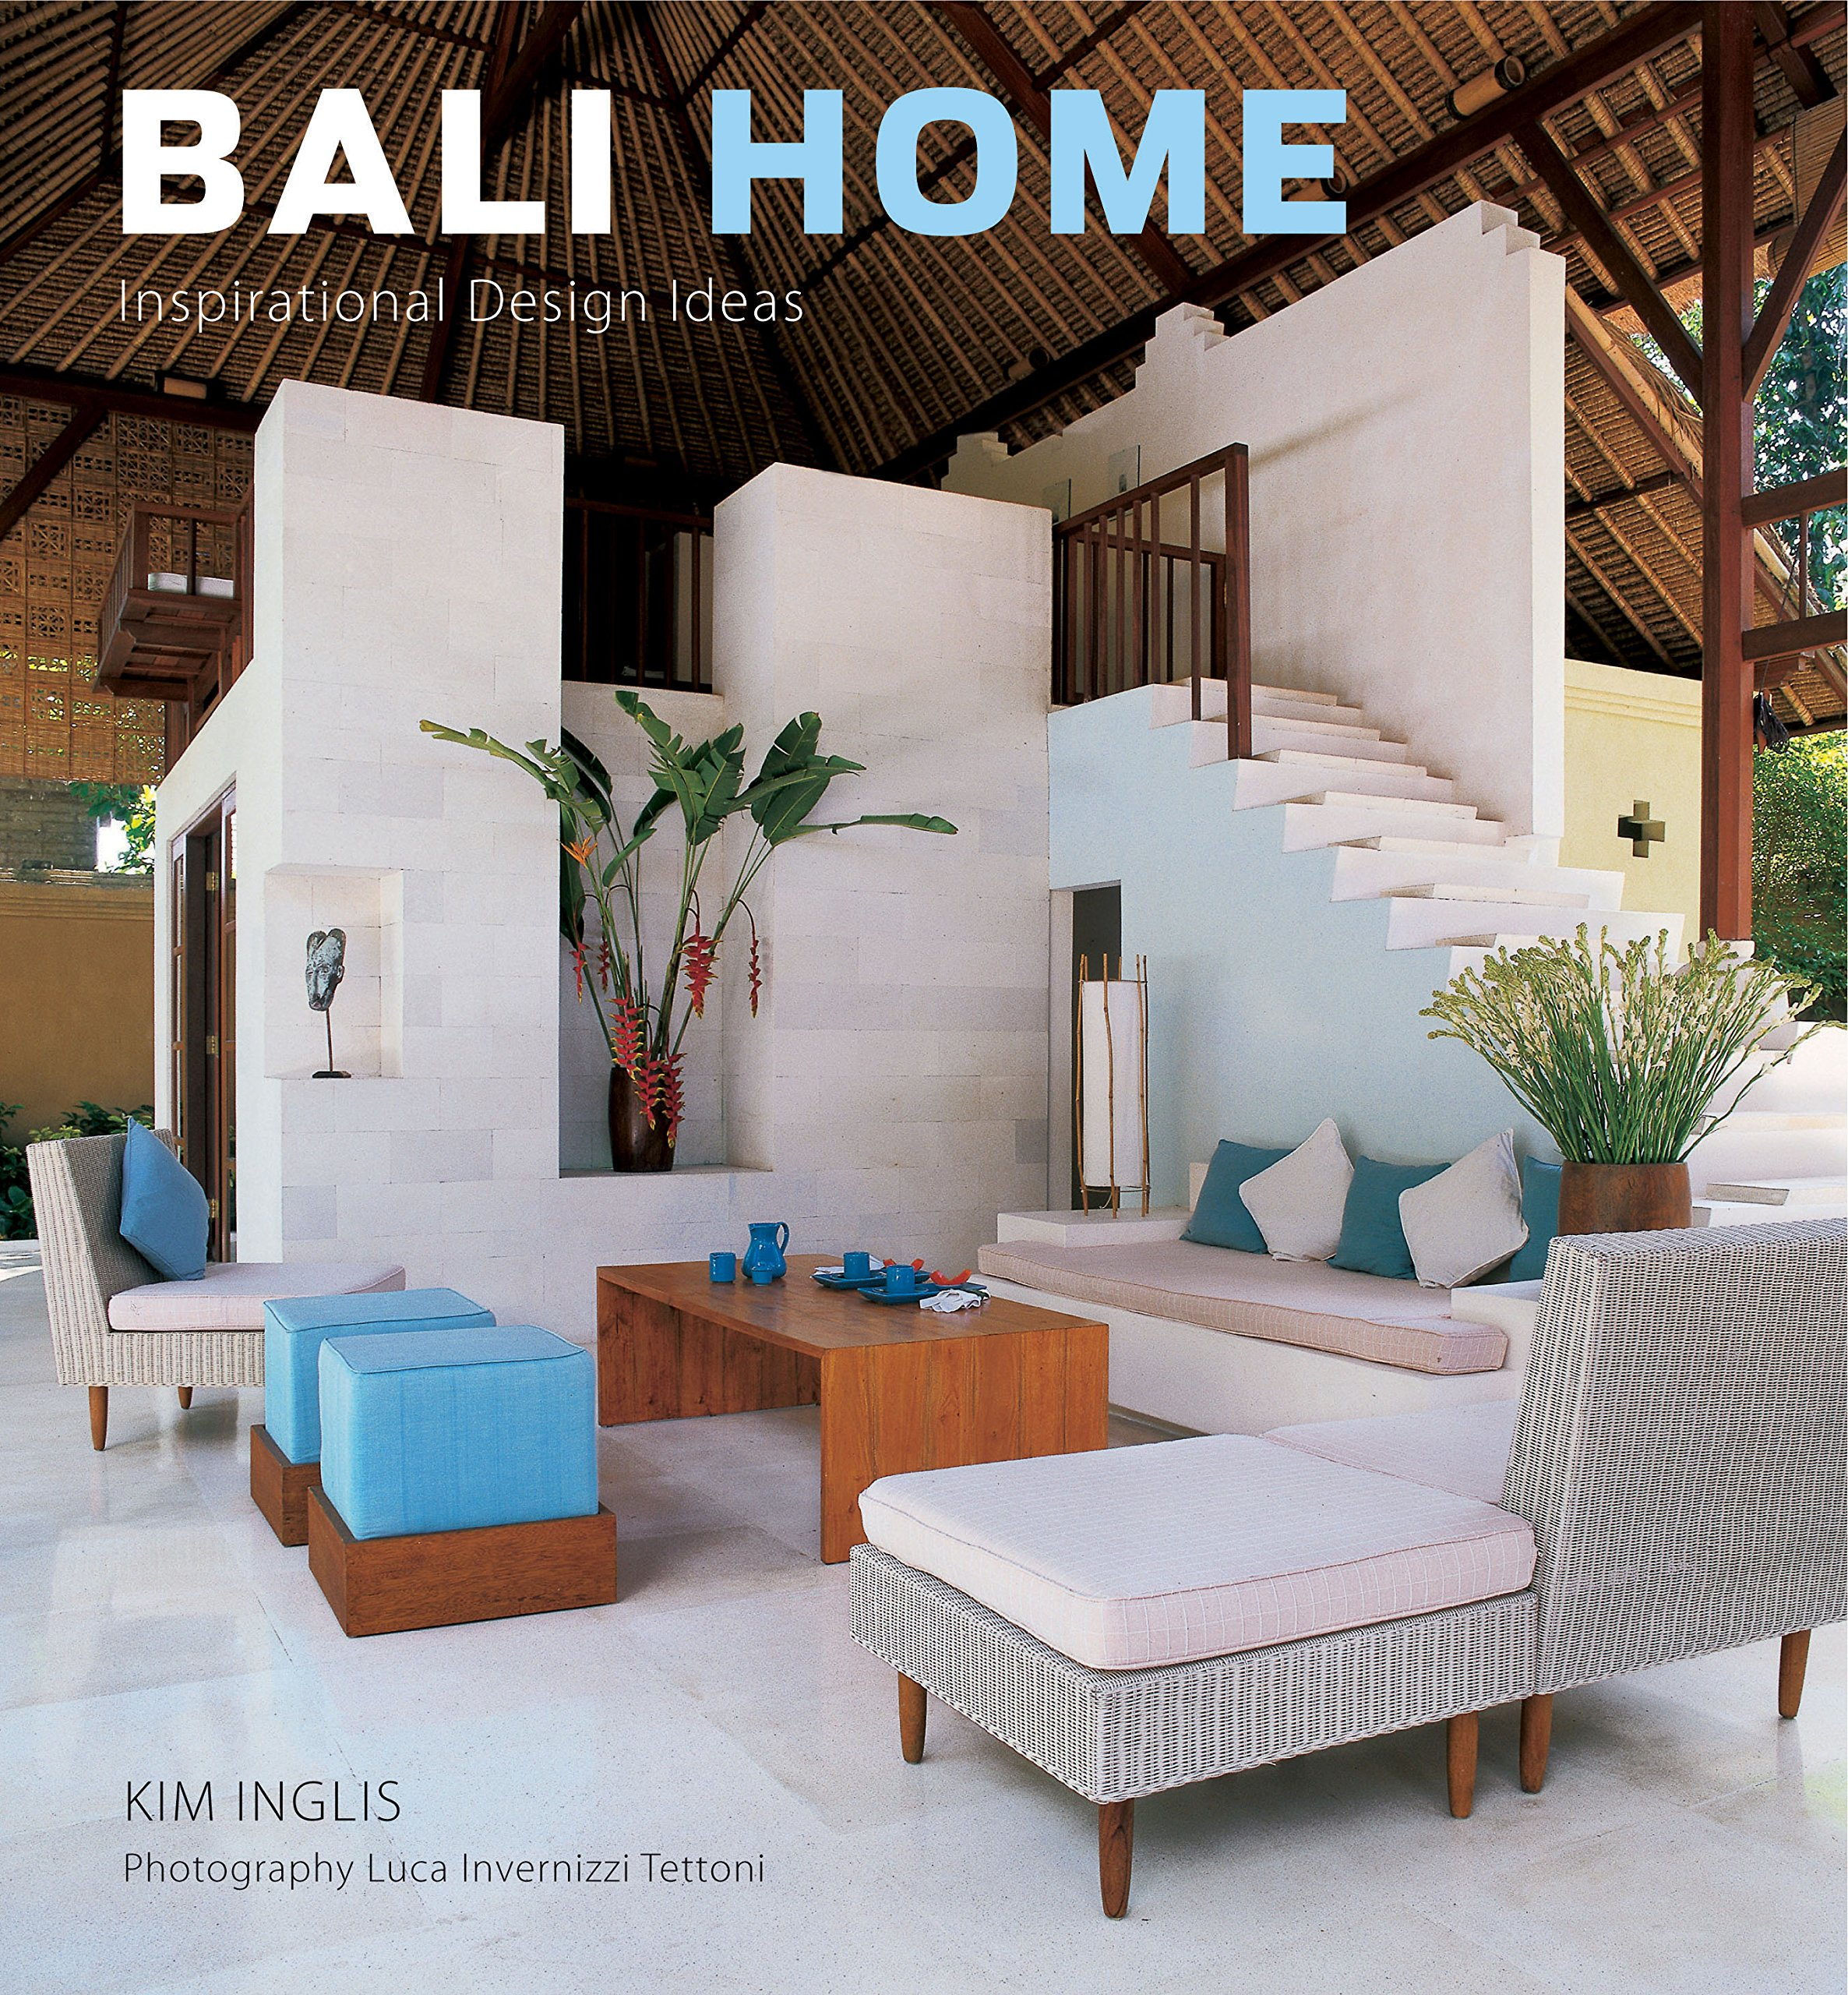 Bali Home: Inspirational Design Ideas: Kim Inglis, Luca Invernizzi Tettoni:  9780804839822: Amazon.com: Books